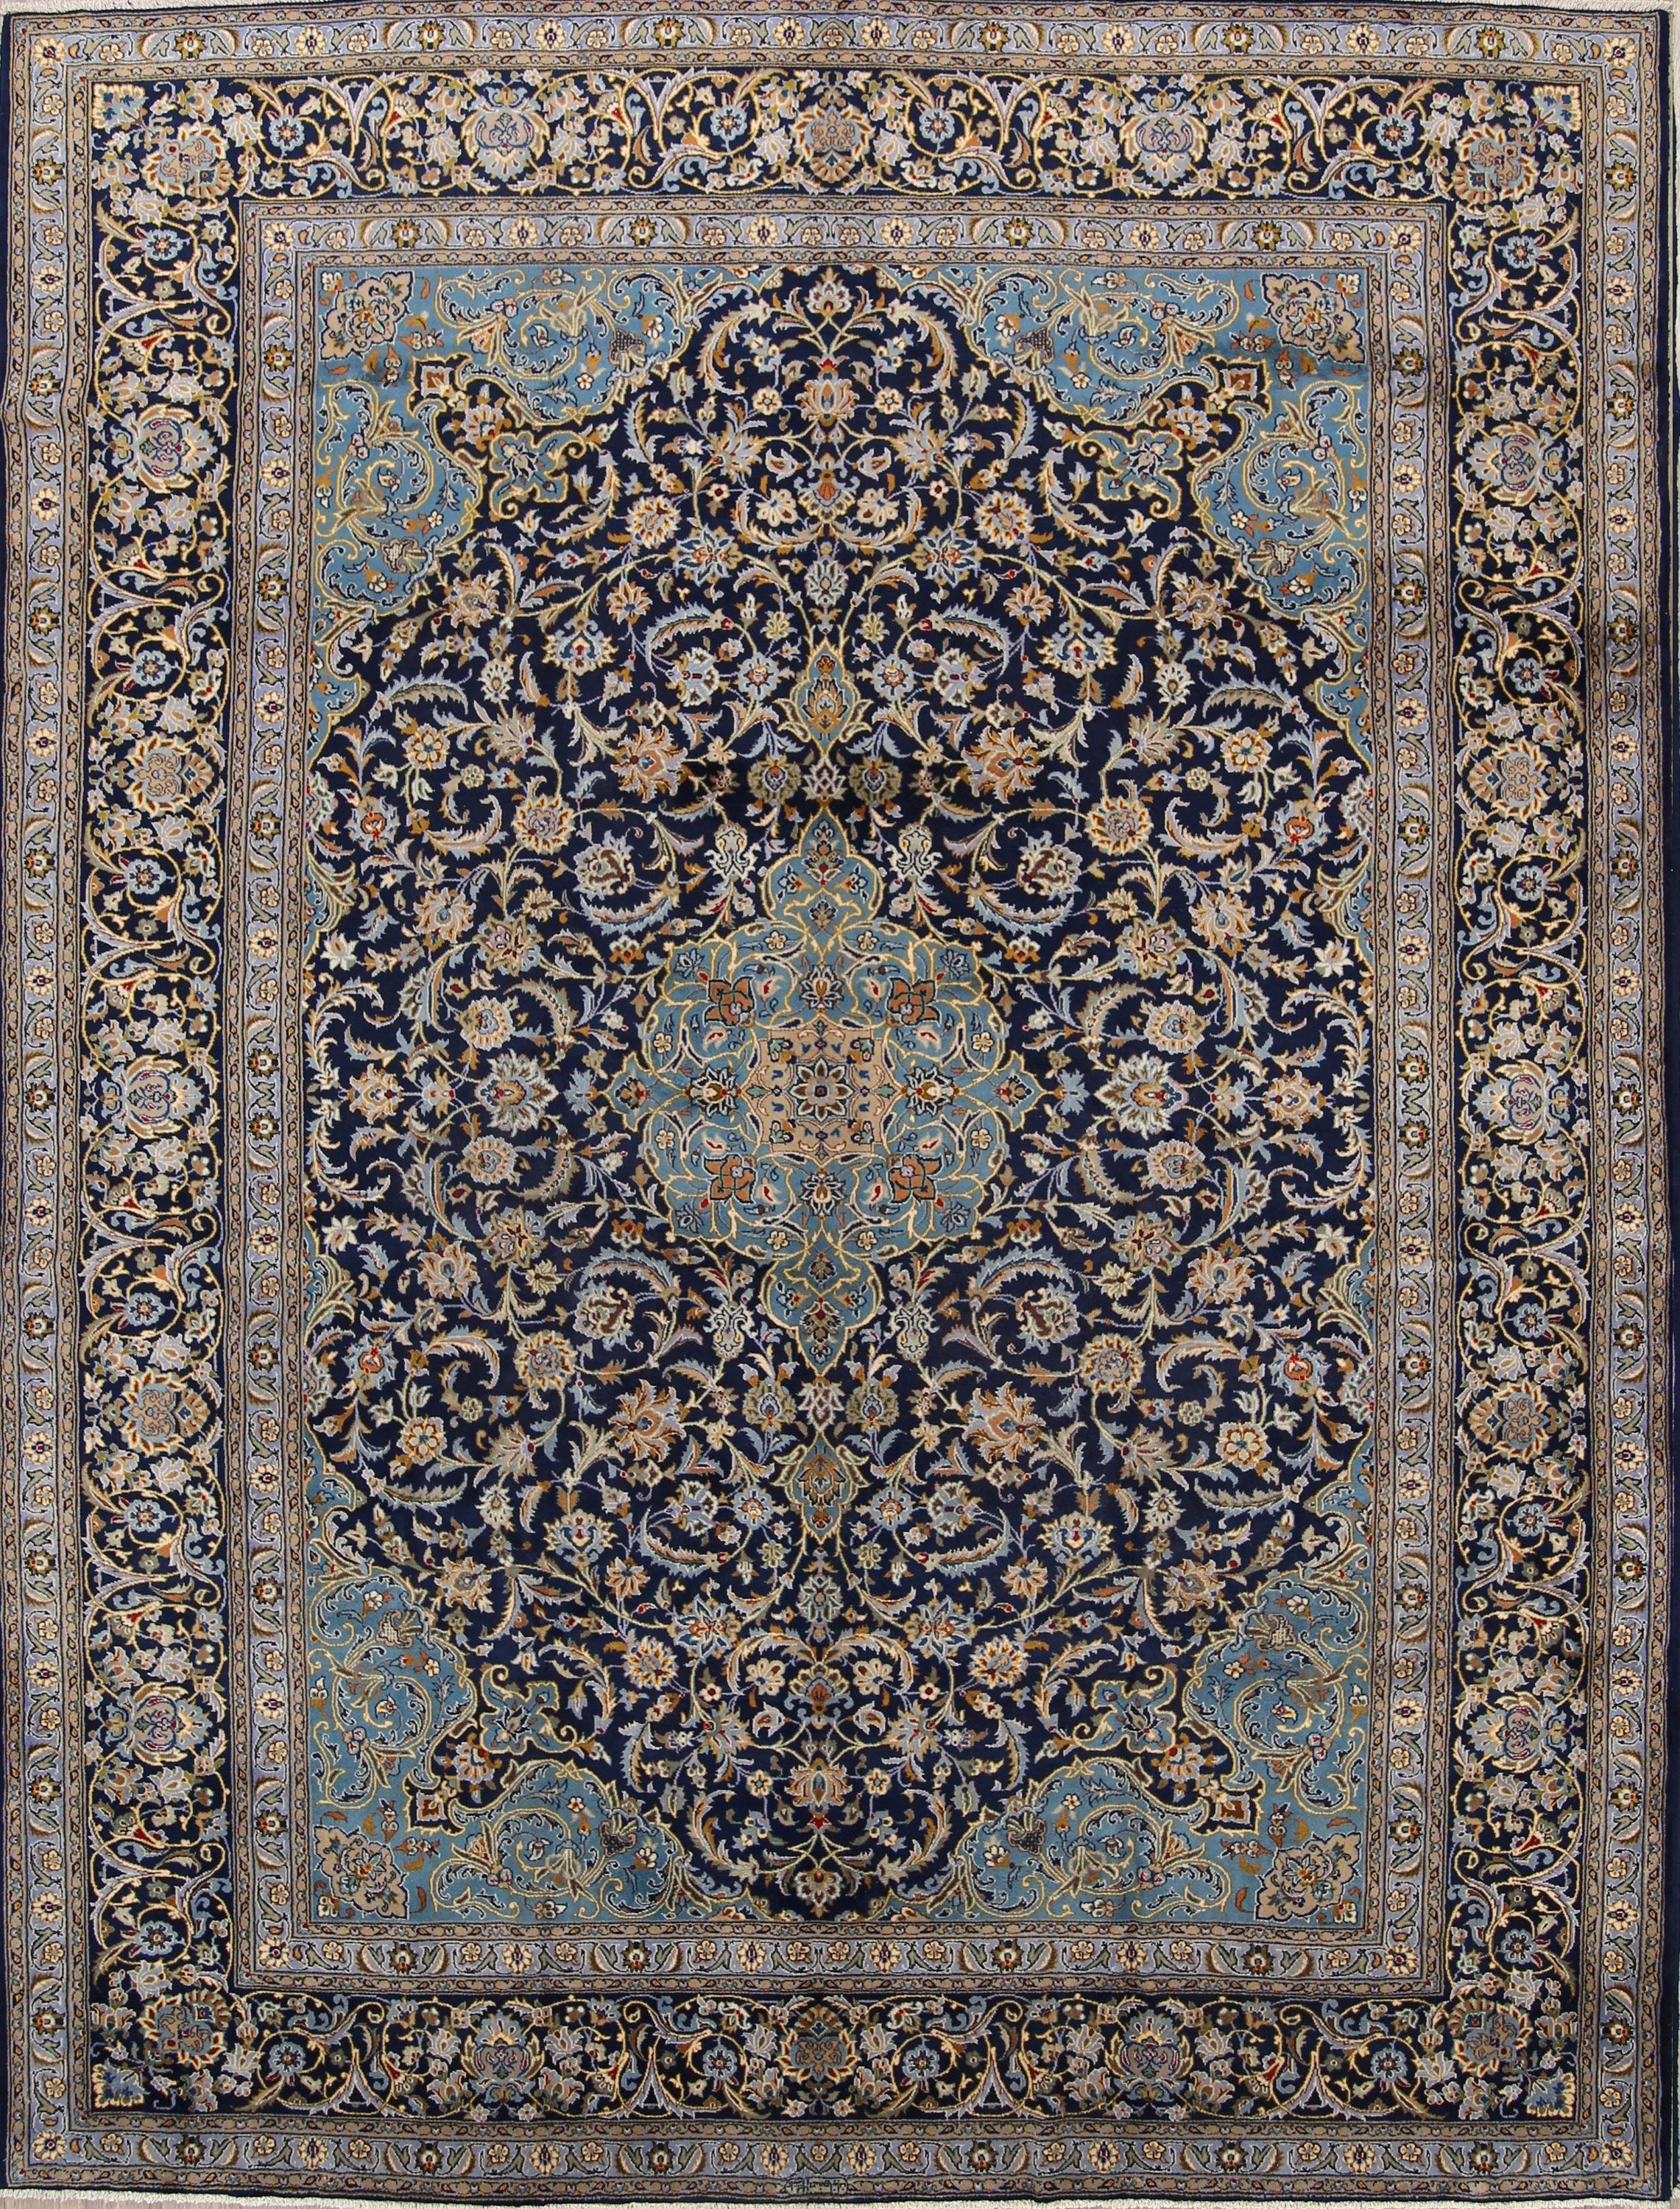 Excellent Navy Blue Fl 10x13 Kashan Persian Area Rug Online Unlimited Source Of Oriental And Antique Rugs